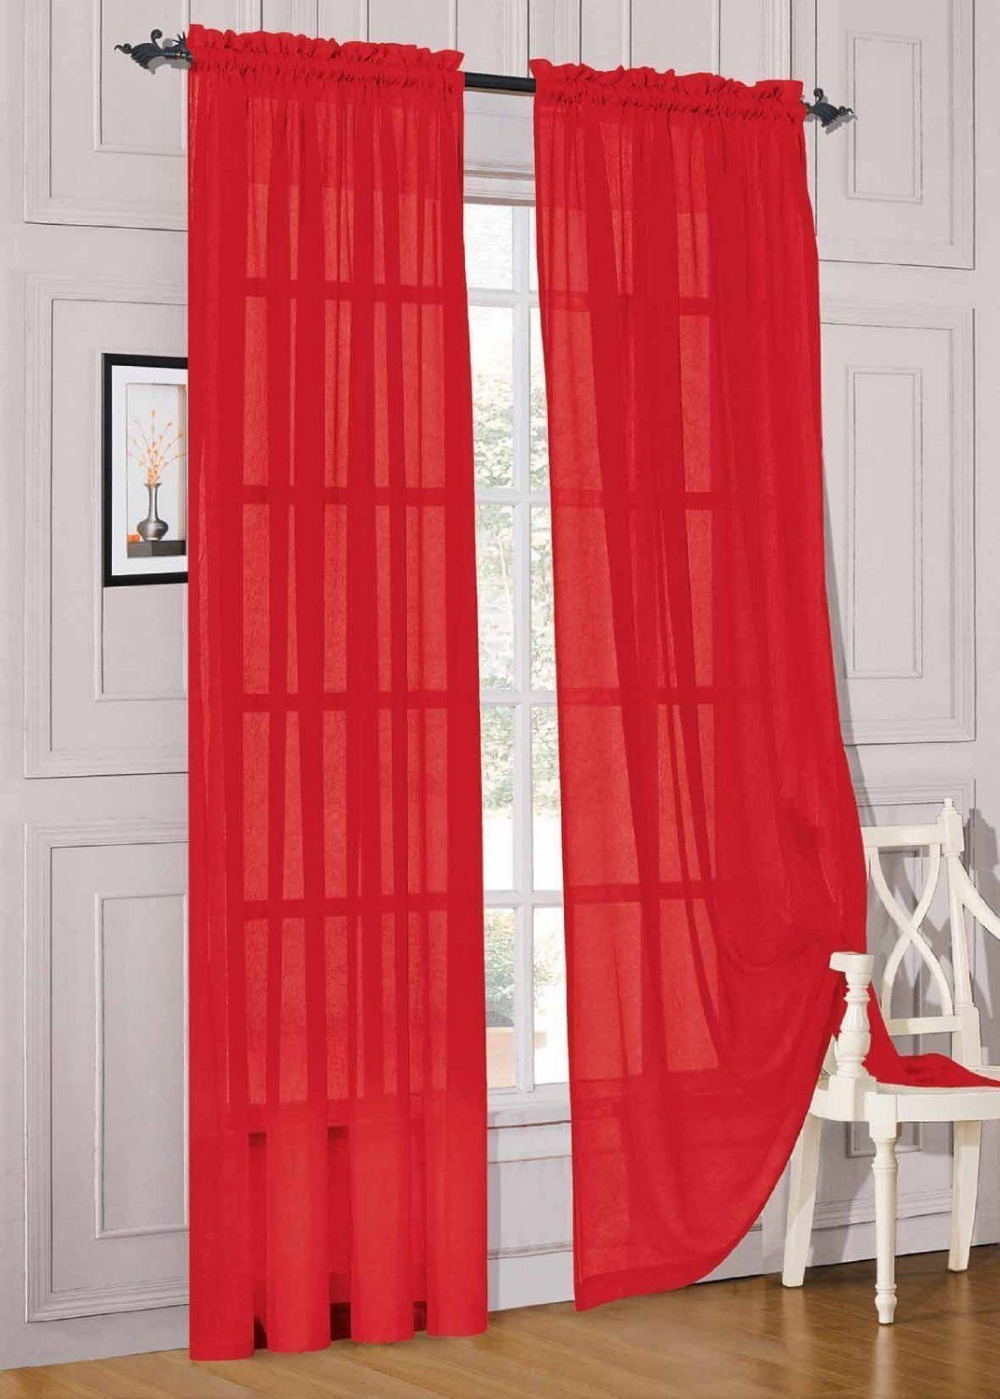 Sheer red window curtains -